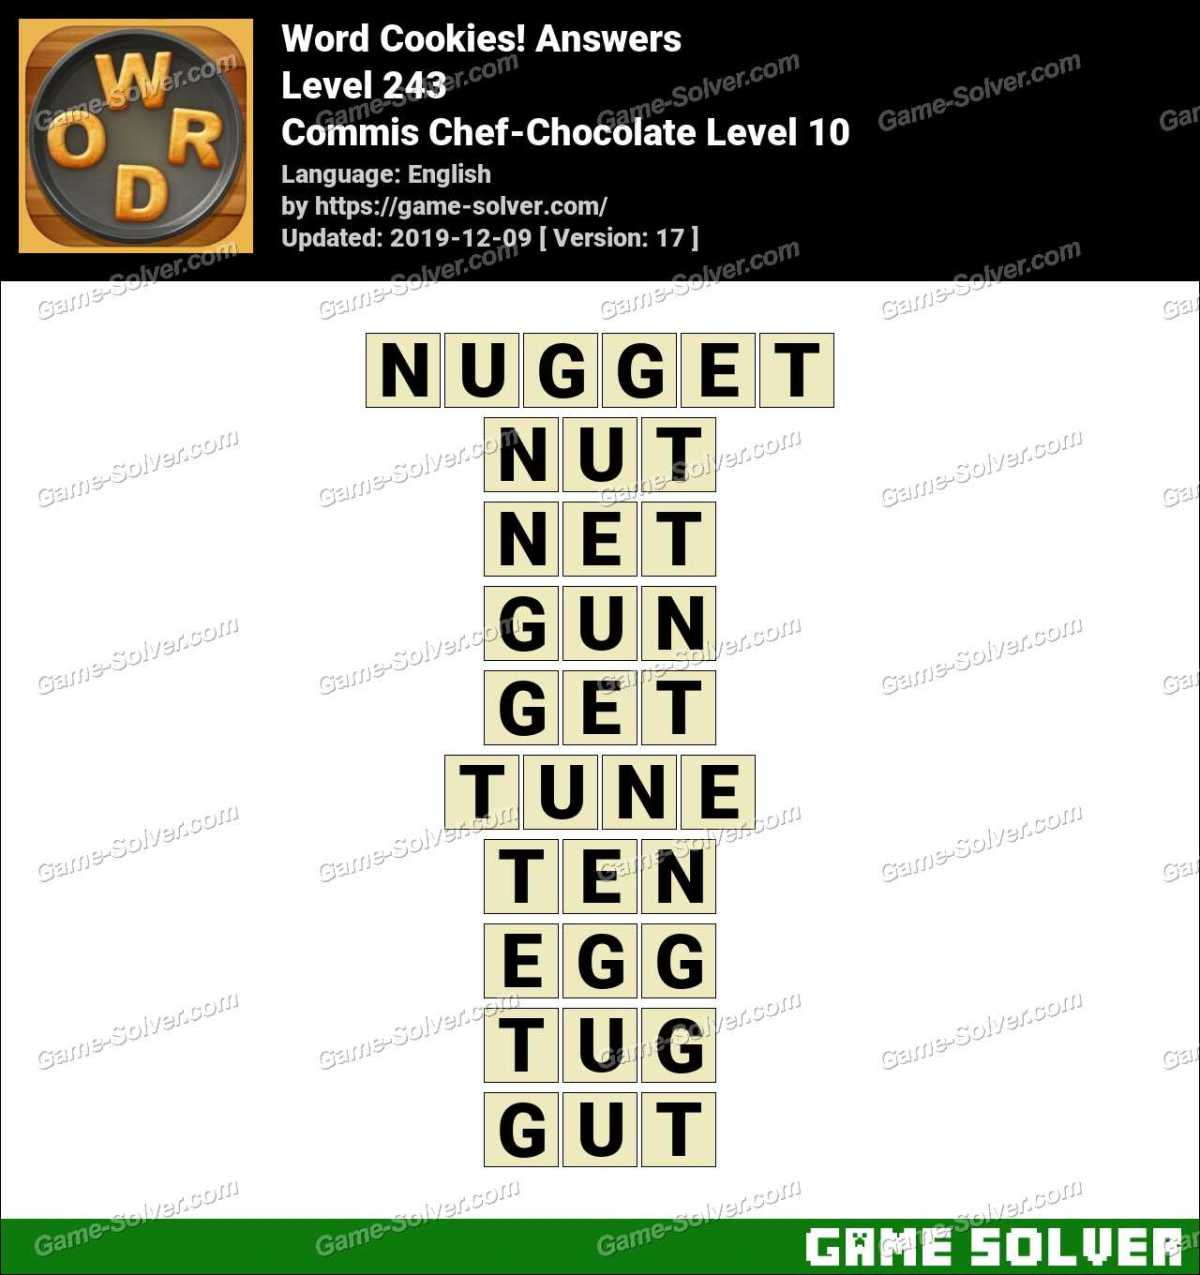 Word Cookies Commis Chef-Chocolate Level 10 Answers